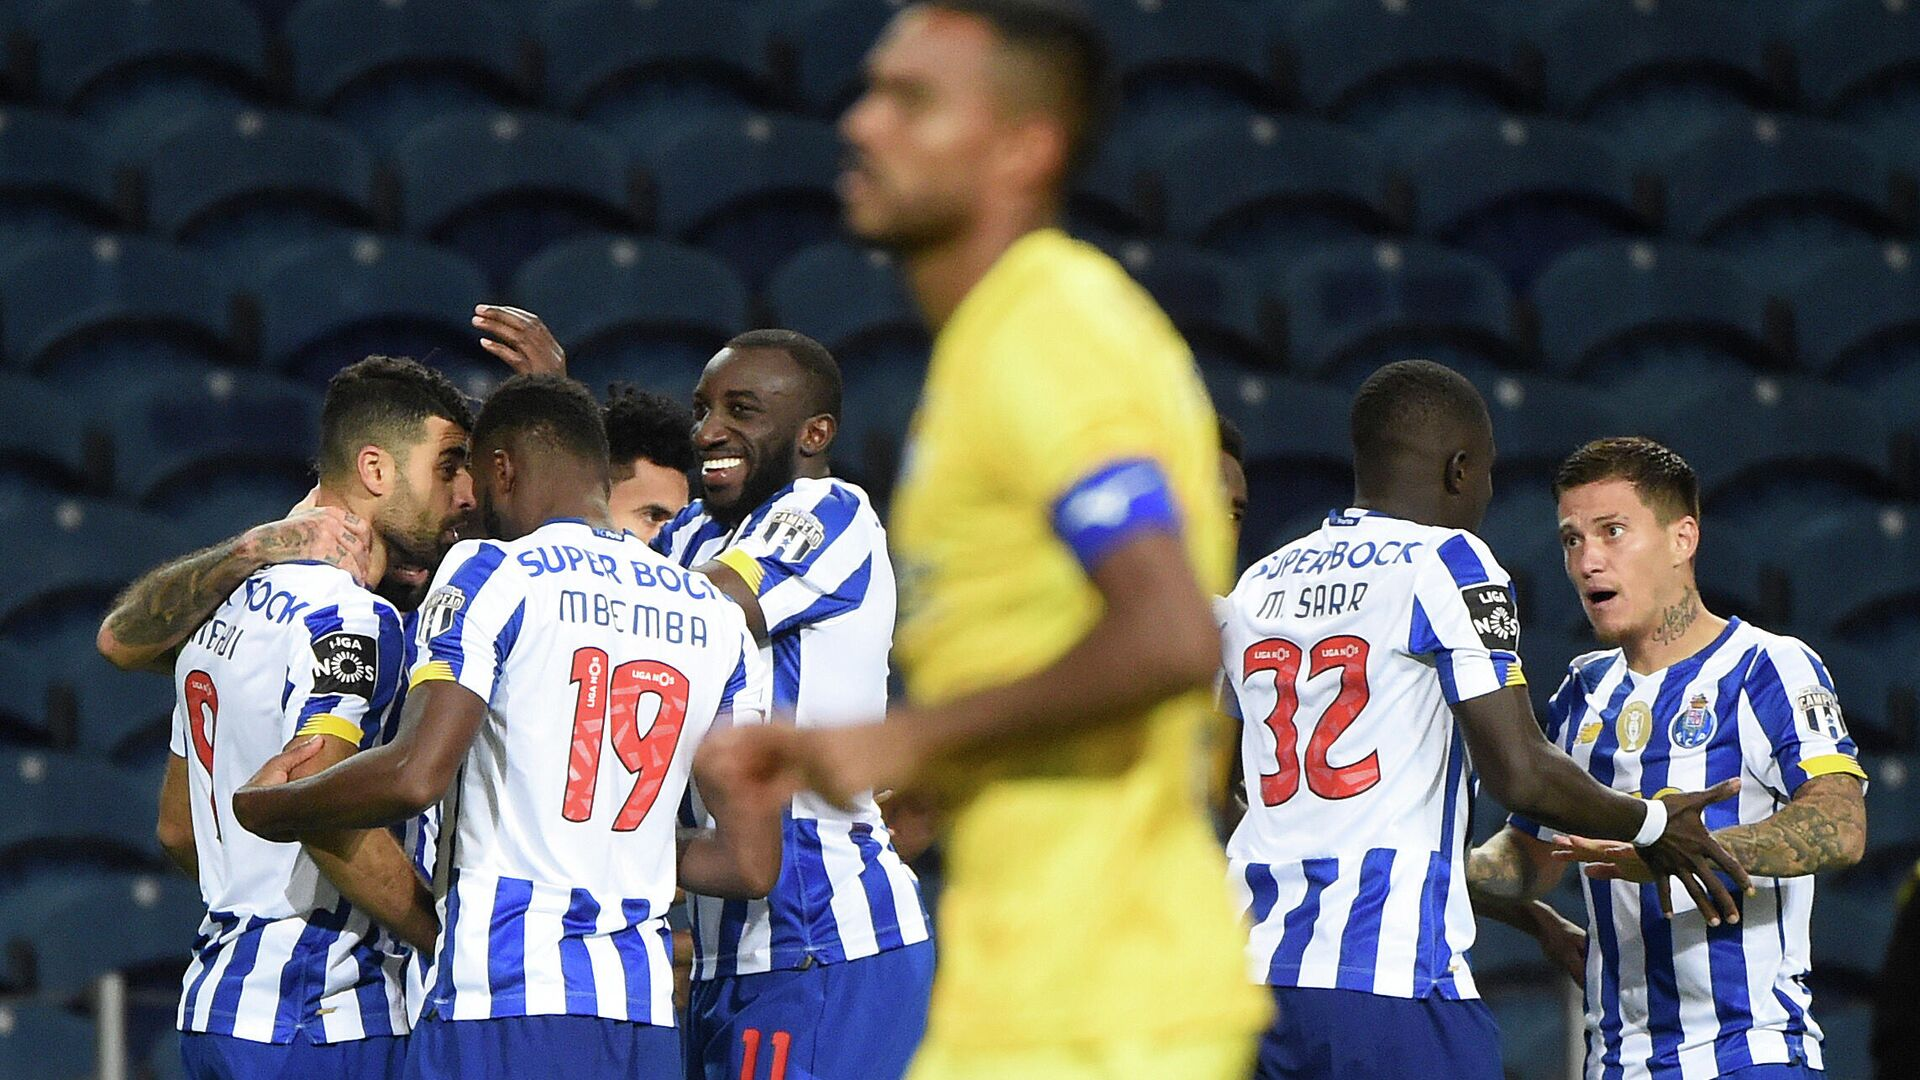 Porto's players celebrate after Porto's Iranian forward Mehdi Taremi (L) scored a goal during the Portuguese League football match between Porto and Portimonense at the Dragao stadium in Porto on November 8, 2020. (Photo by MIGUEL RIOPA / AFP) - РИА Новости, 1920, 08.11.2020